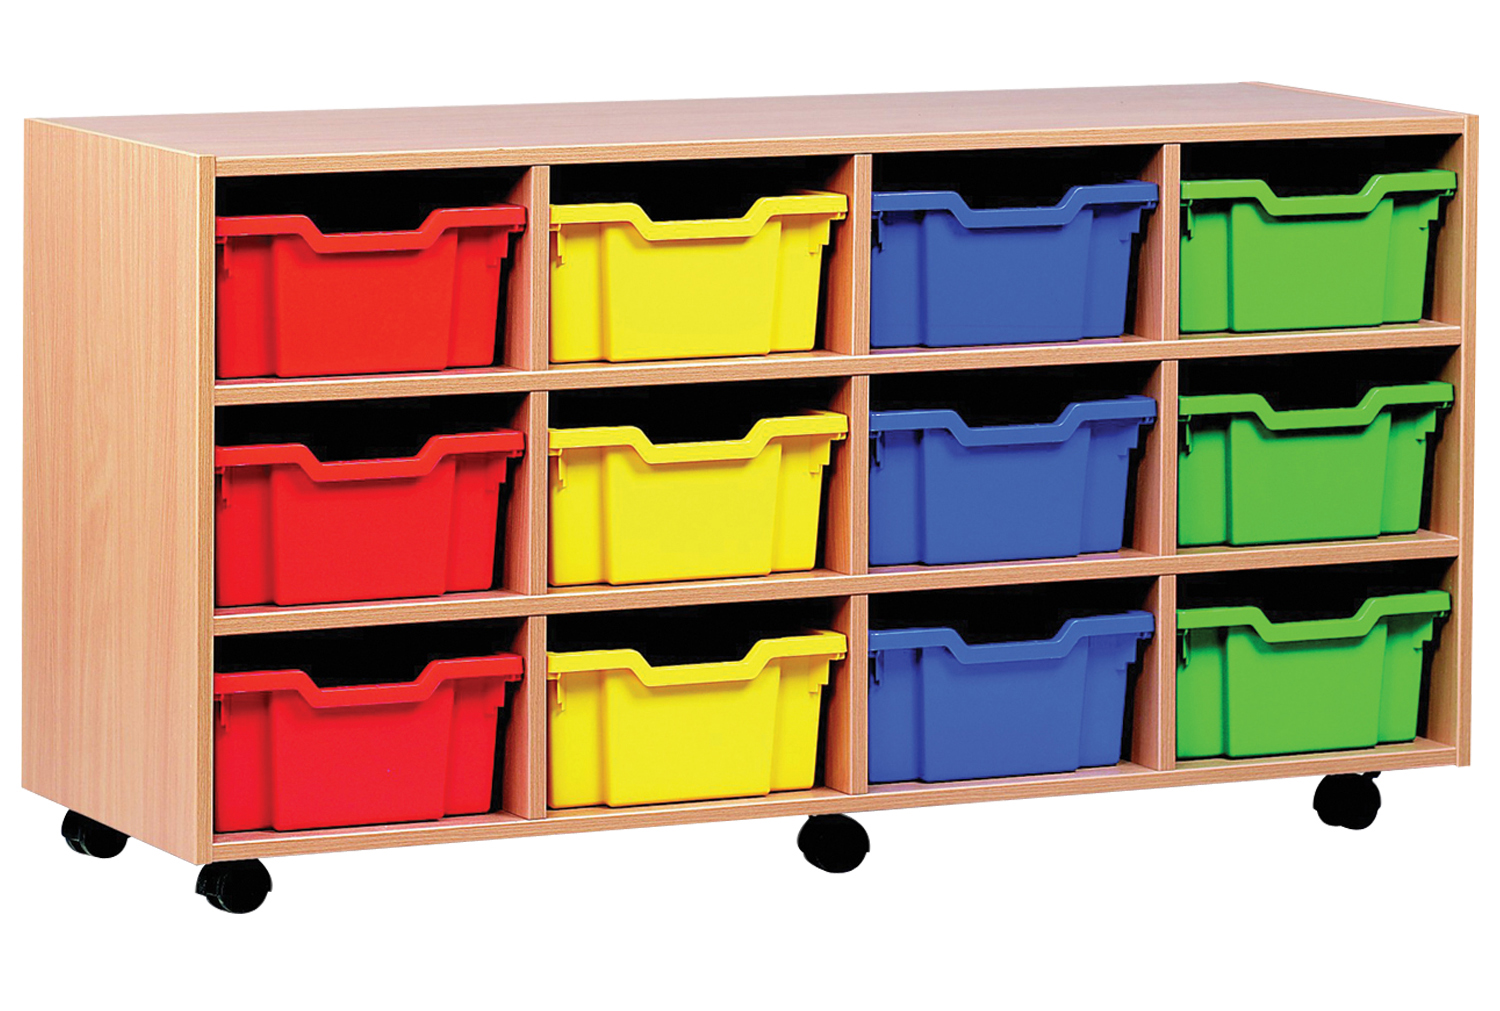 Image of 12 Deep Tray Storage Unit, Red/Blue/Yellow